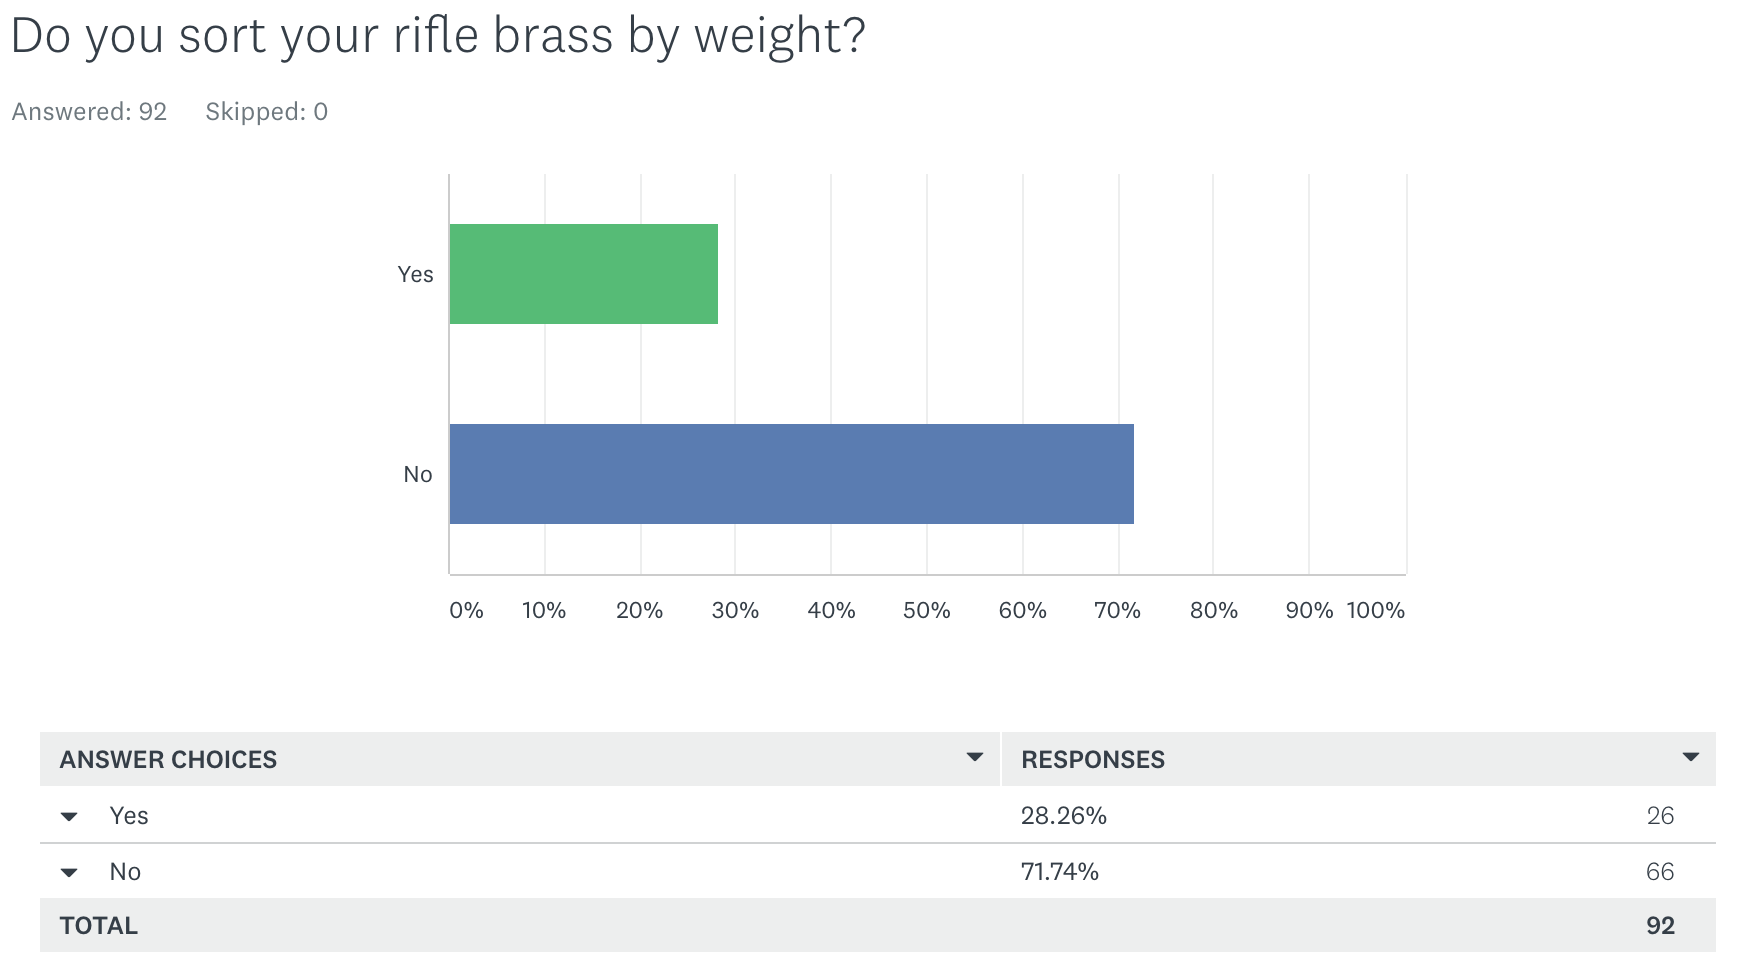 Survey Results: Do you sort your rifle brass by weight?